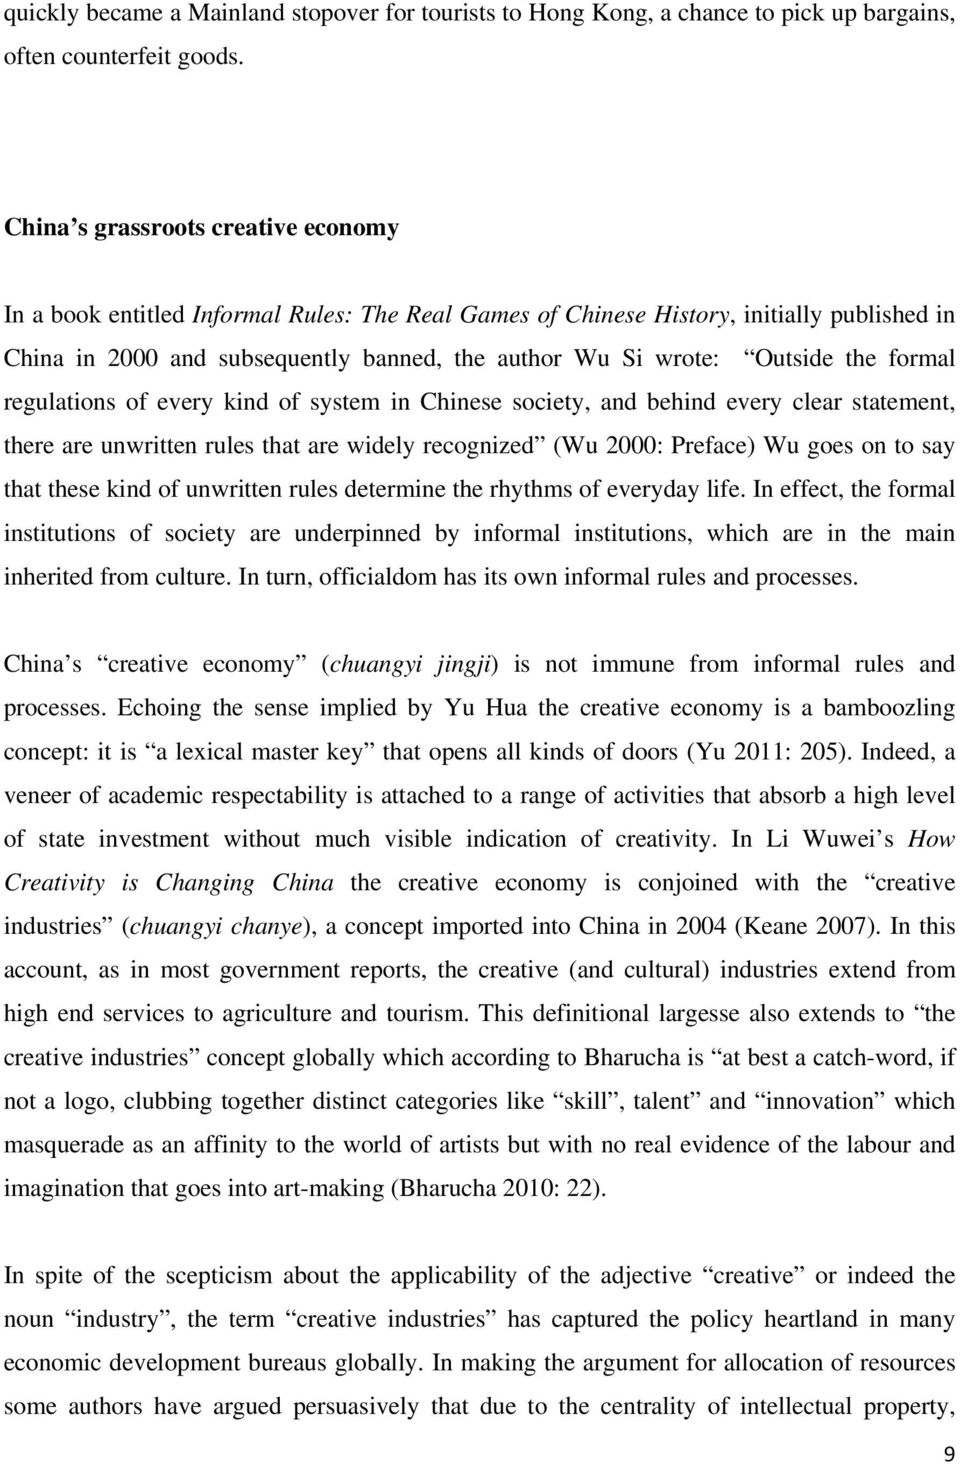 the formal regulations of every kind of system in Chinese society, and behind every clear statement, there are unwritten rules that are widely recognized (Wu 2000: Preface) Wu goes on to say that